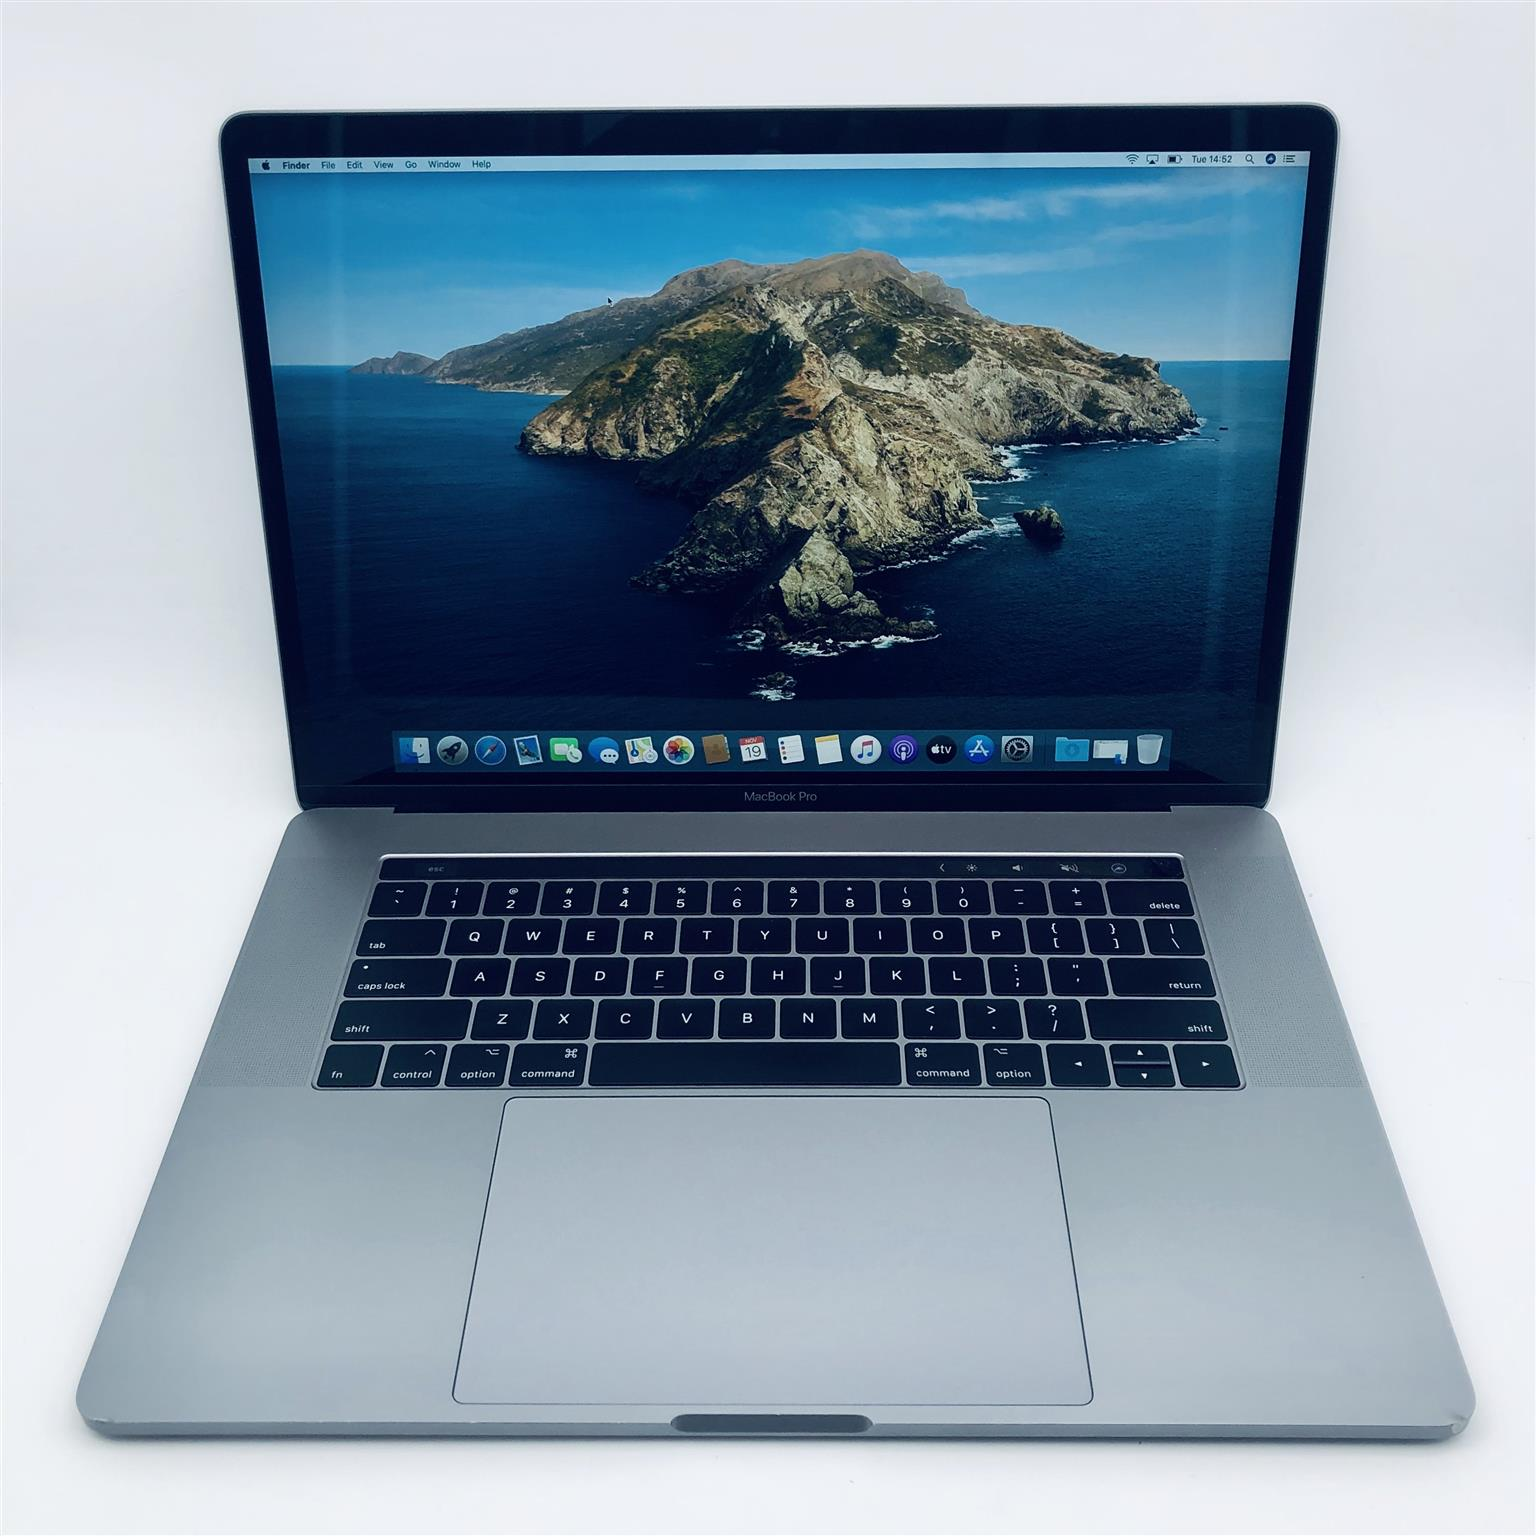 Apple MacBook Pro 15-inch 2.3GHz 8-Core i9 (Touch Bar, 16GB RAM, 512GB SSD, Space Gray) - Pre Owned